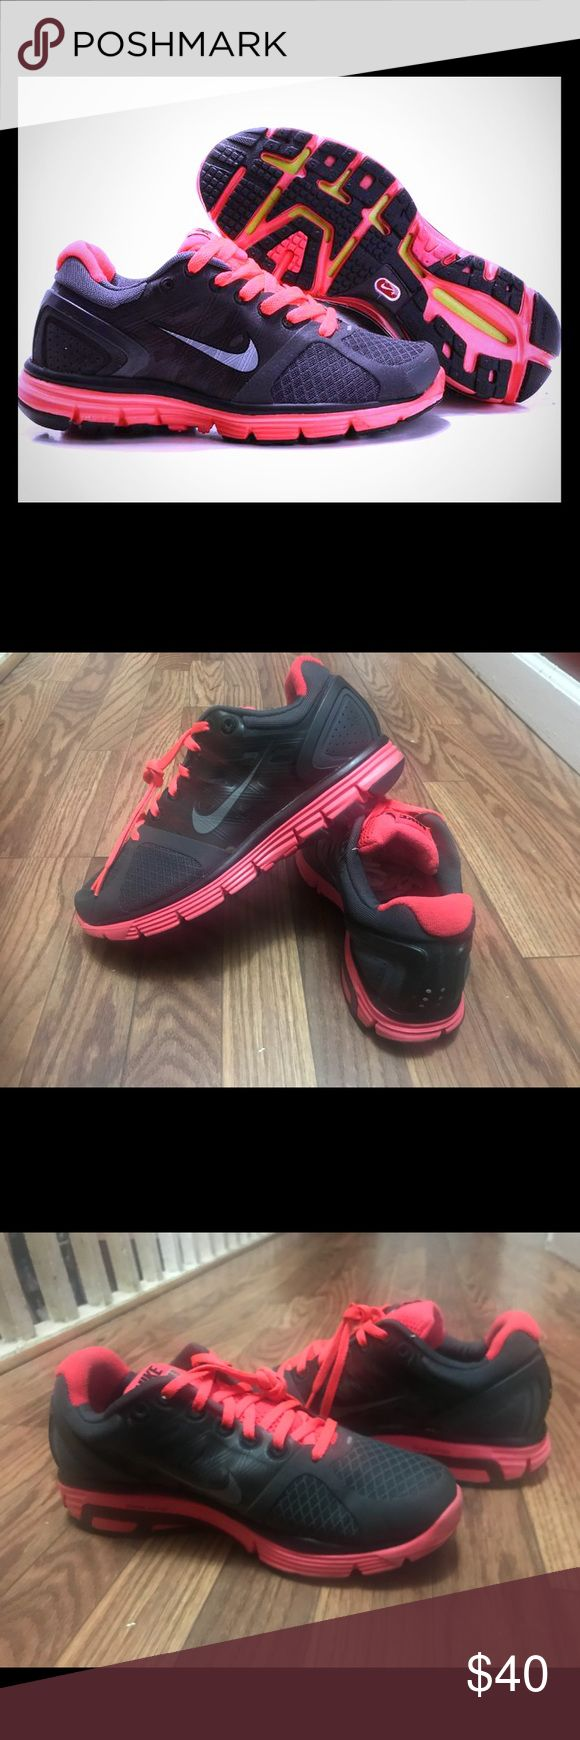 Nike LunarGlide 2 Running Shoes Running shoes Size 7  Gently used / still looks brand new  Very comfortable and stylish! Nike Shoes Athletic Shoes